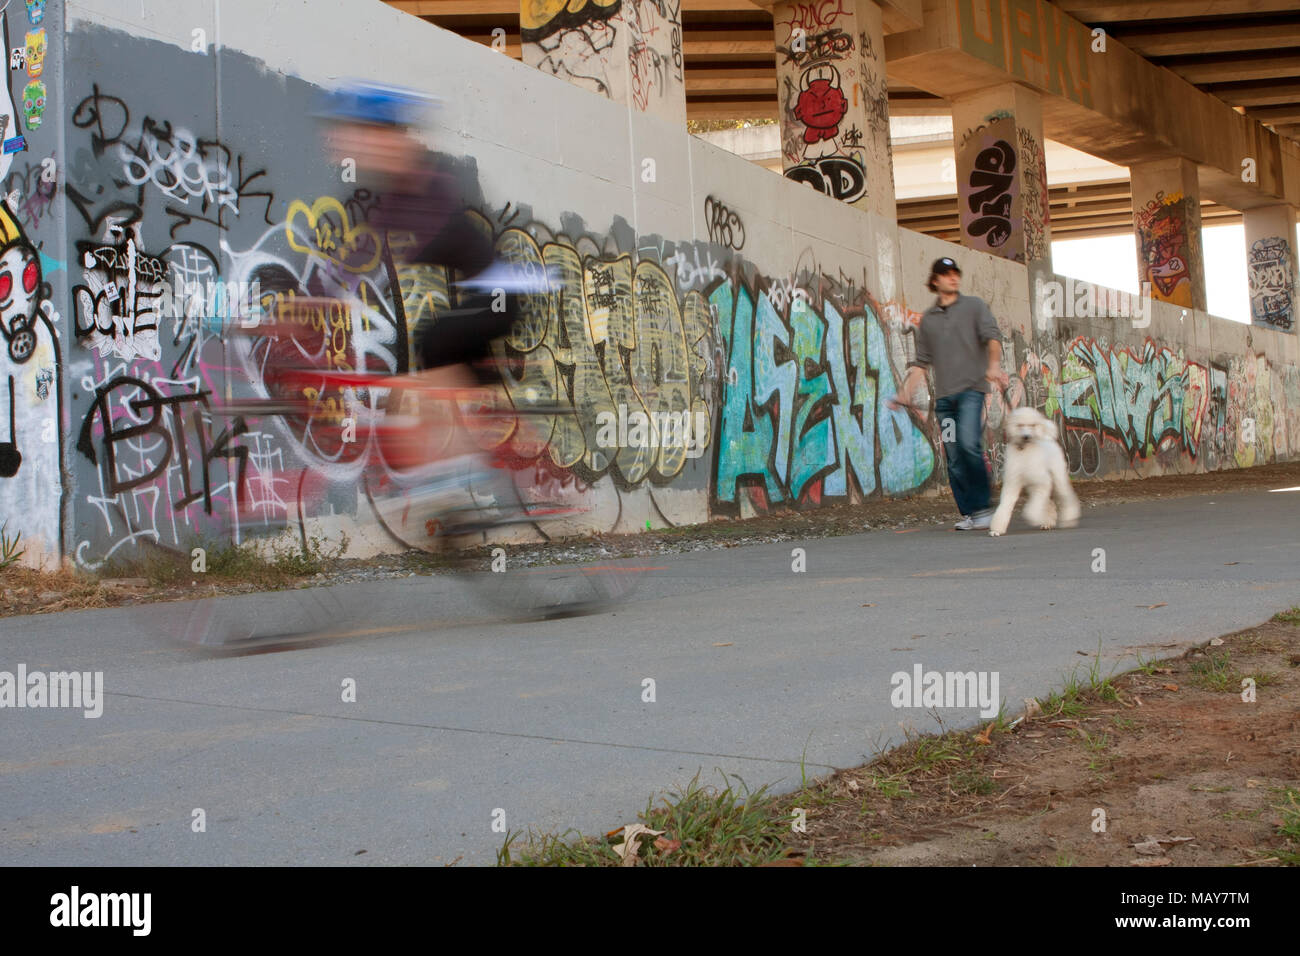 Motion blur of people exercising along a graffiti covered trail that is part of the Atlanta Beltline, on November 2, 2013 in Atlanta, GA. - Stock Image